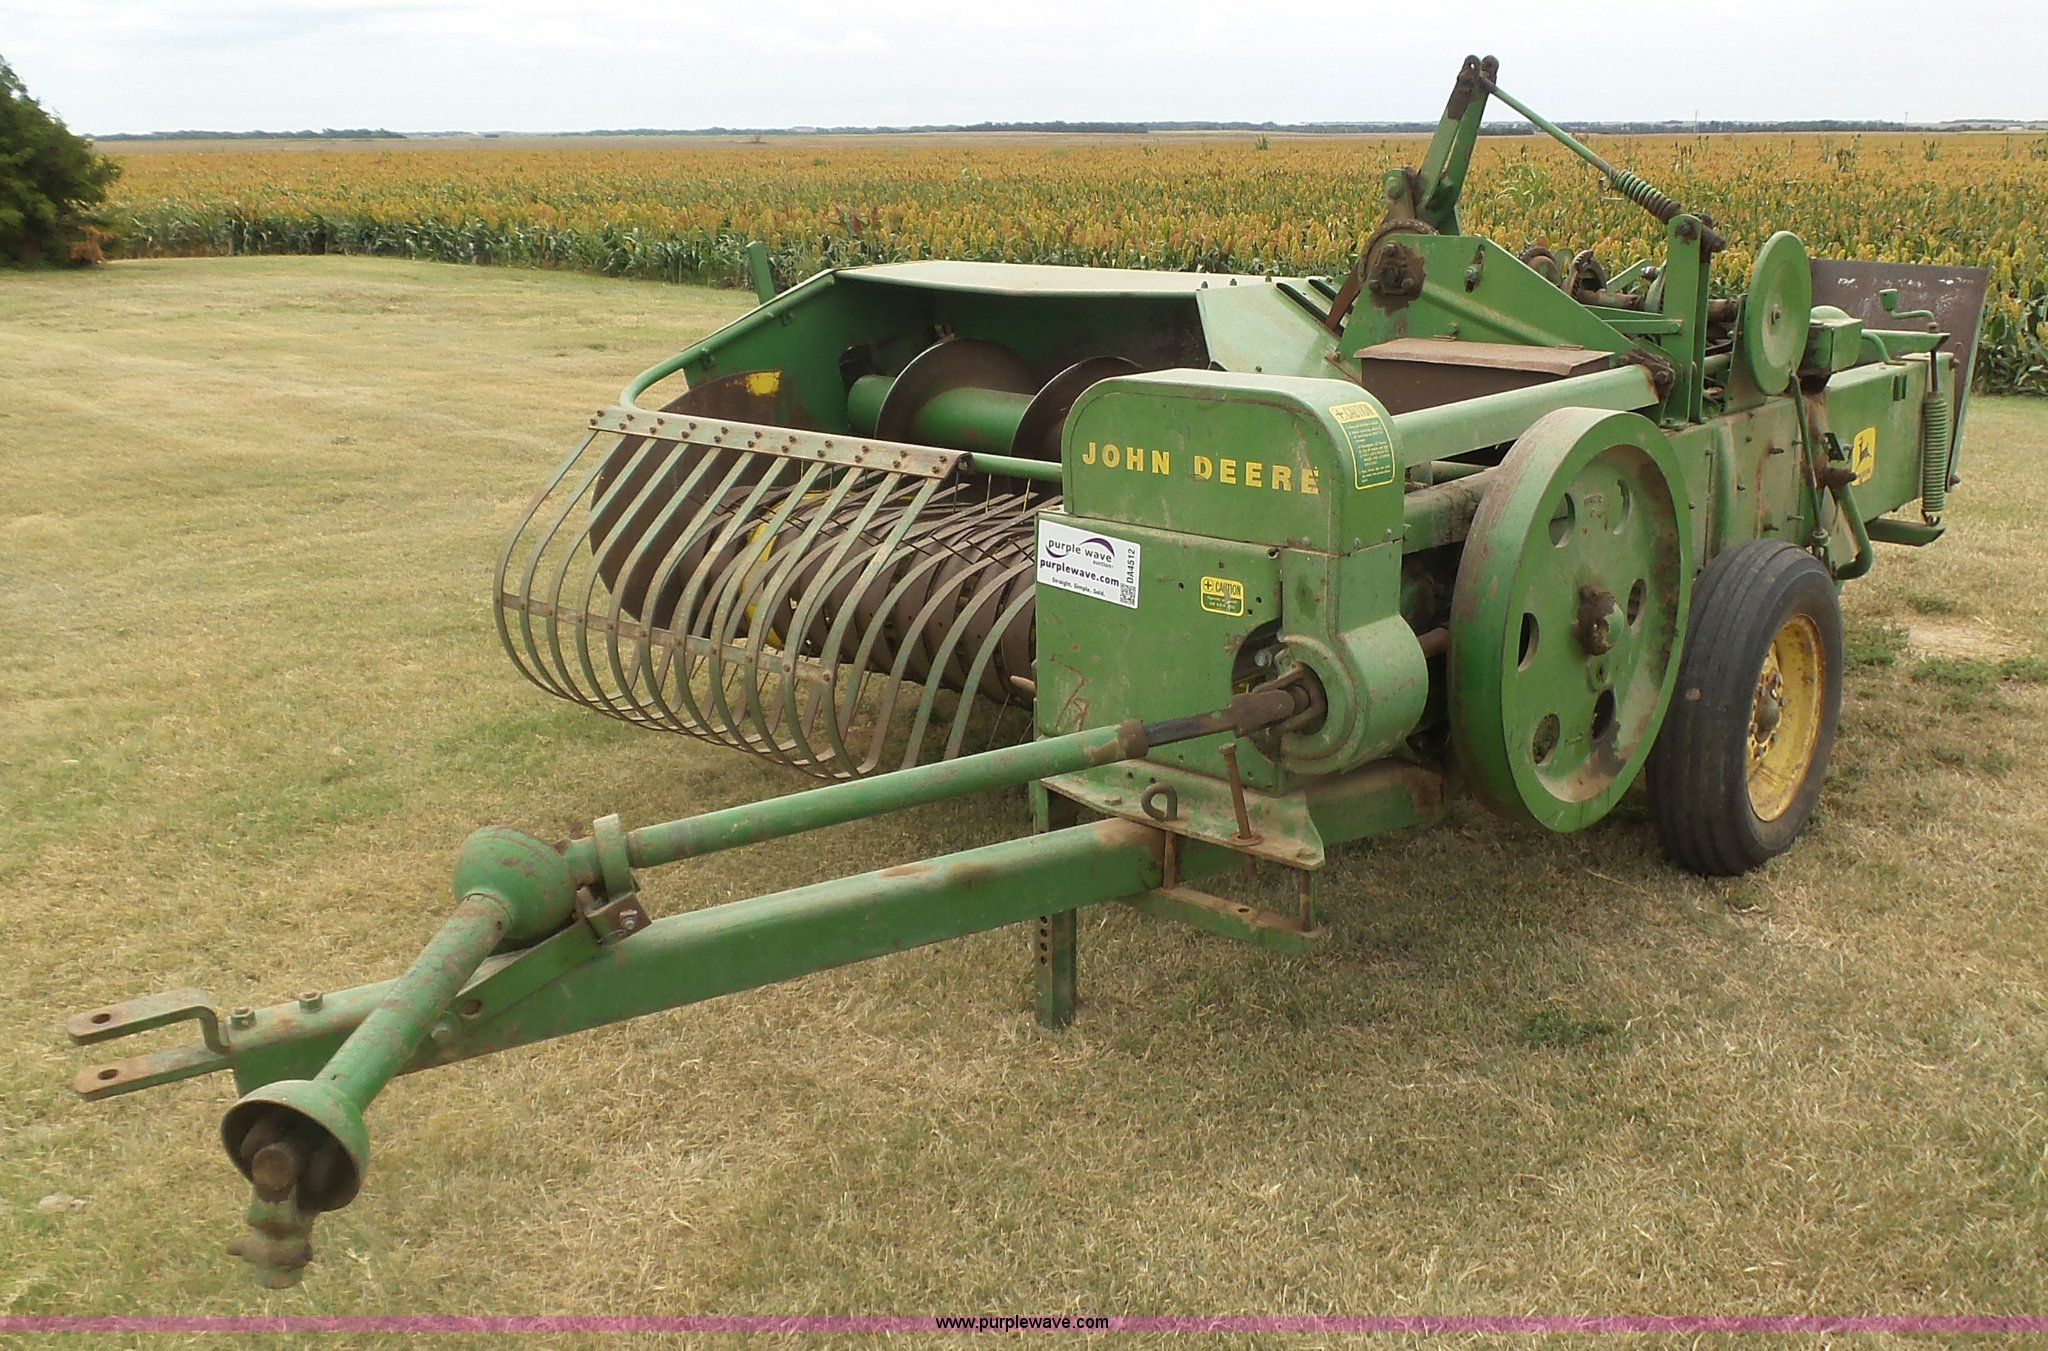 John Deere 24T small square baler | Item DA4512 | SOLD! Sept